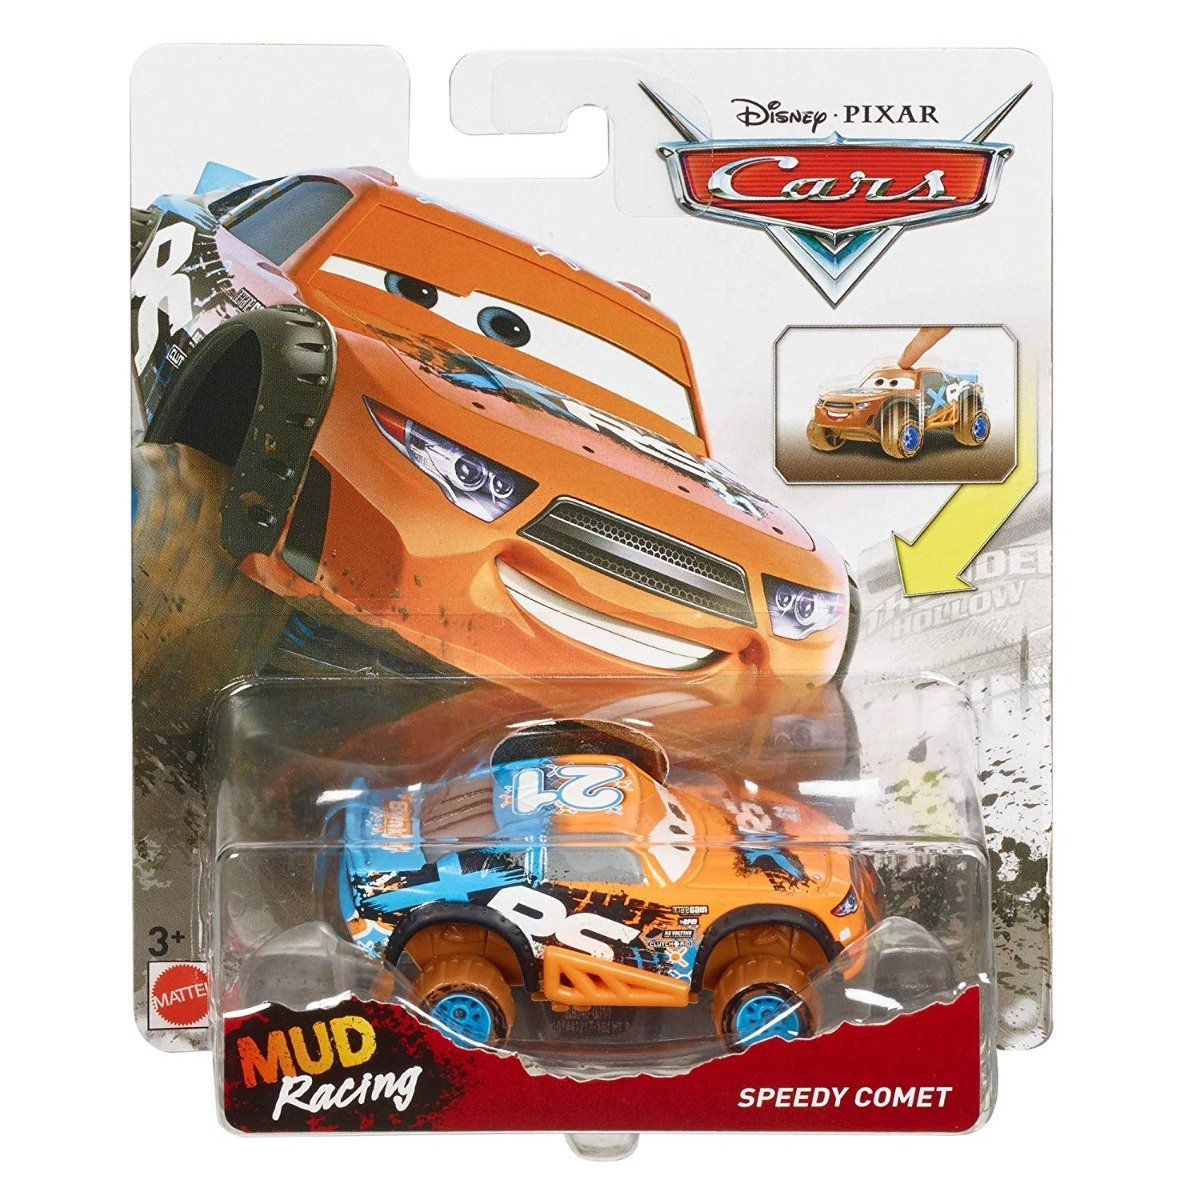 Masinuta Disney Cars XRS Mud Racing, Speedy Comet, GBJ40